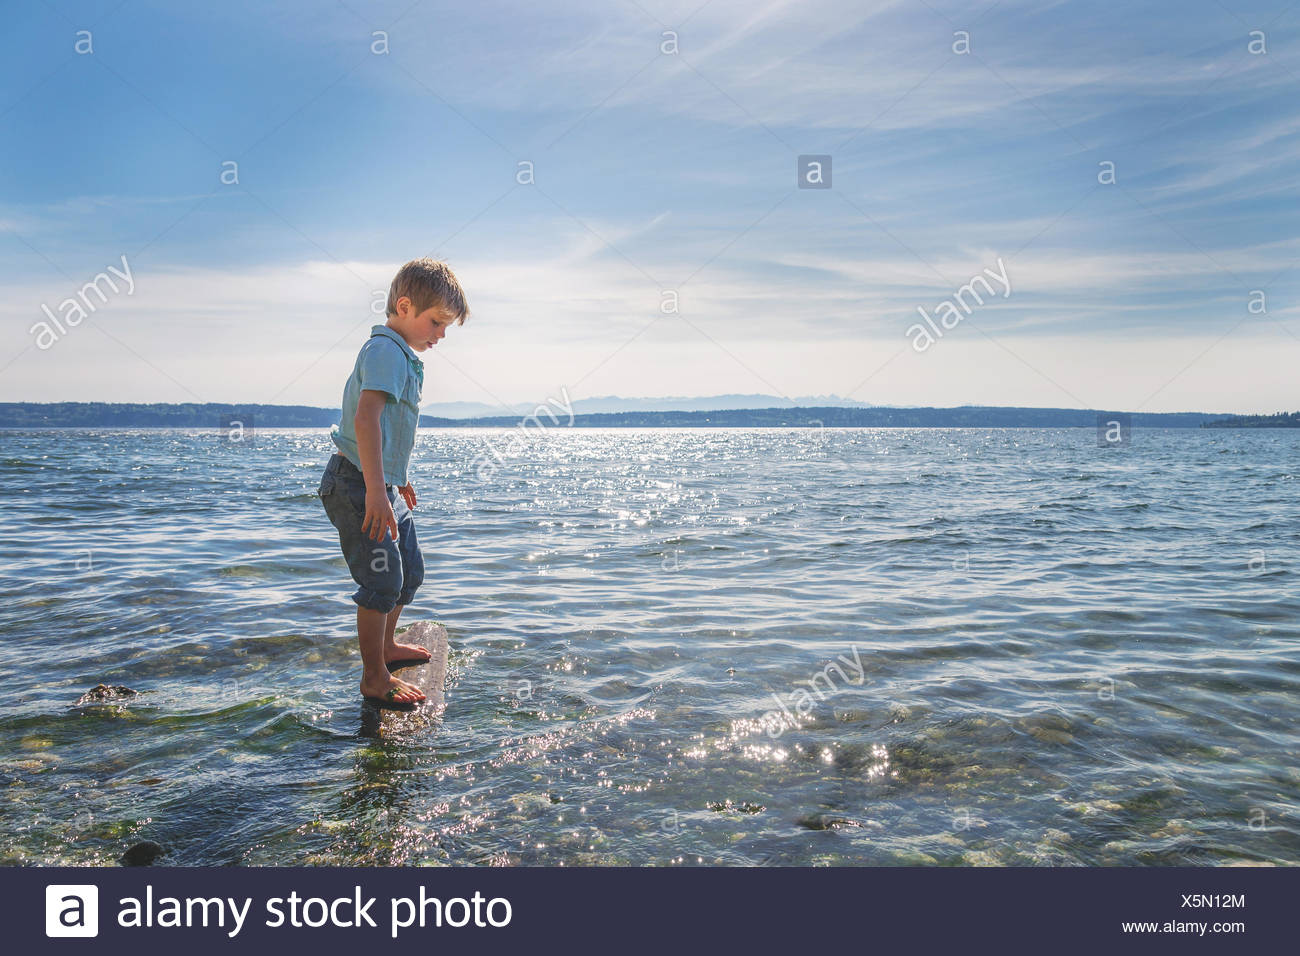 Boy standing on a wooden log in the sea Stock Photo